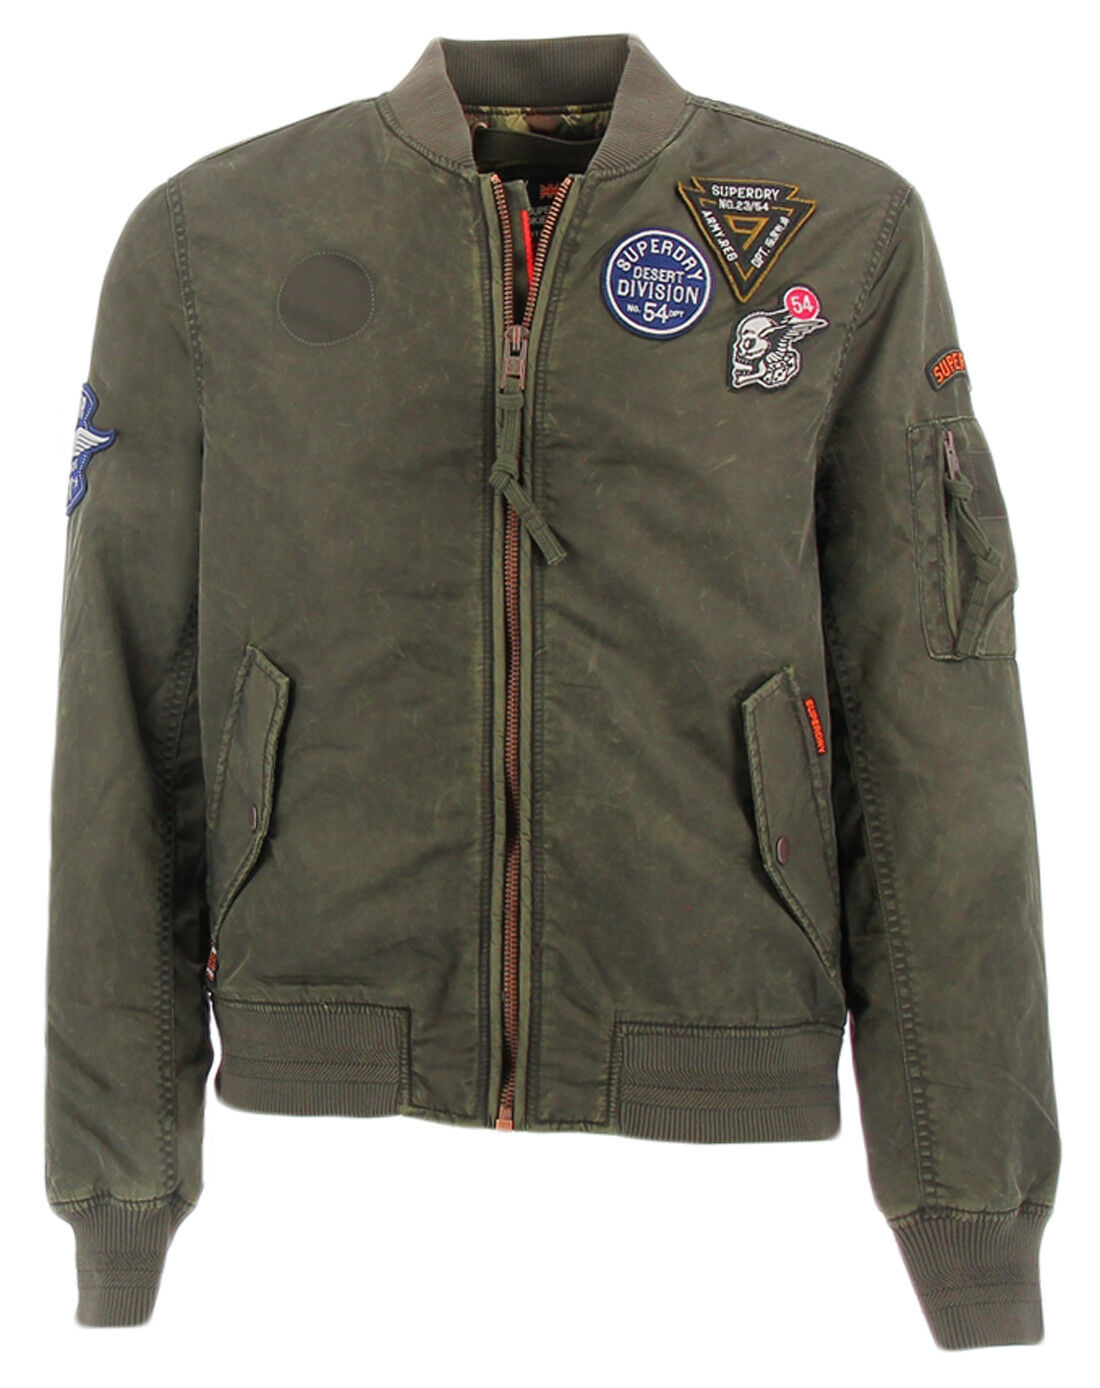 Chaqueta bomber de Superdry Limited Issue Flight Green para hombre Superdry LIMI